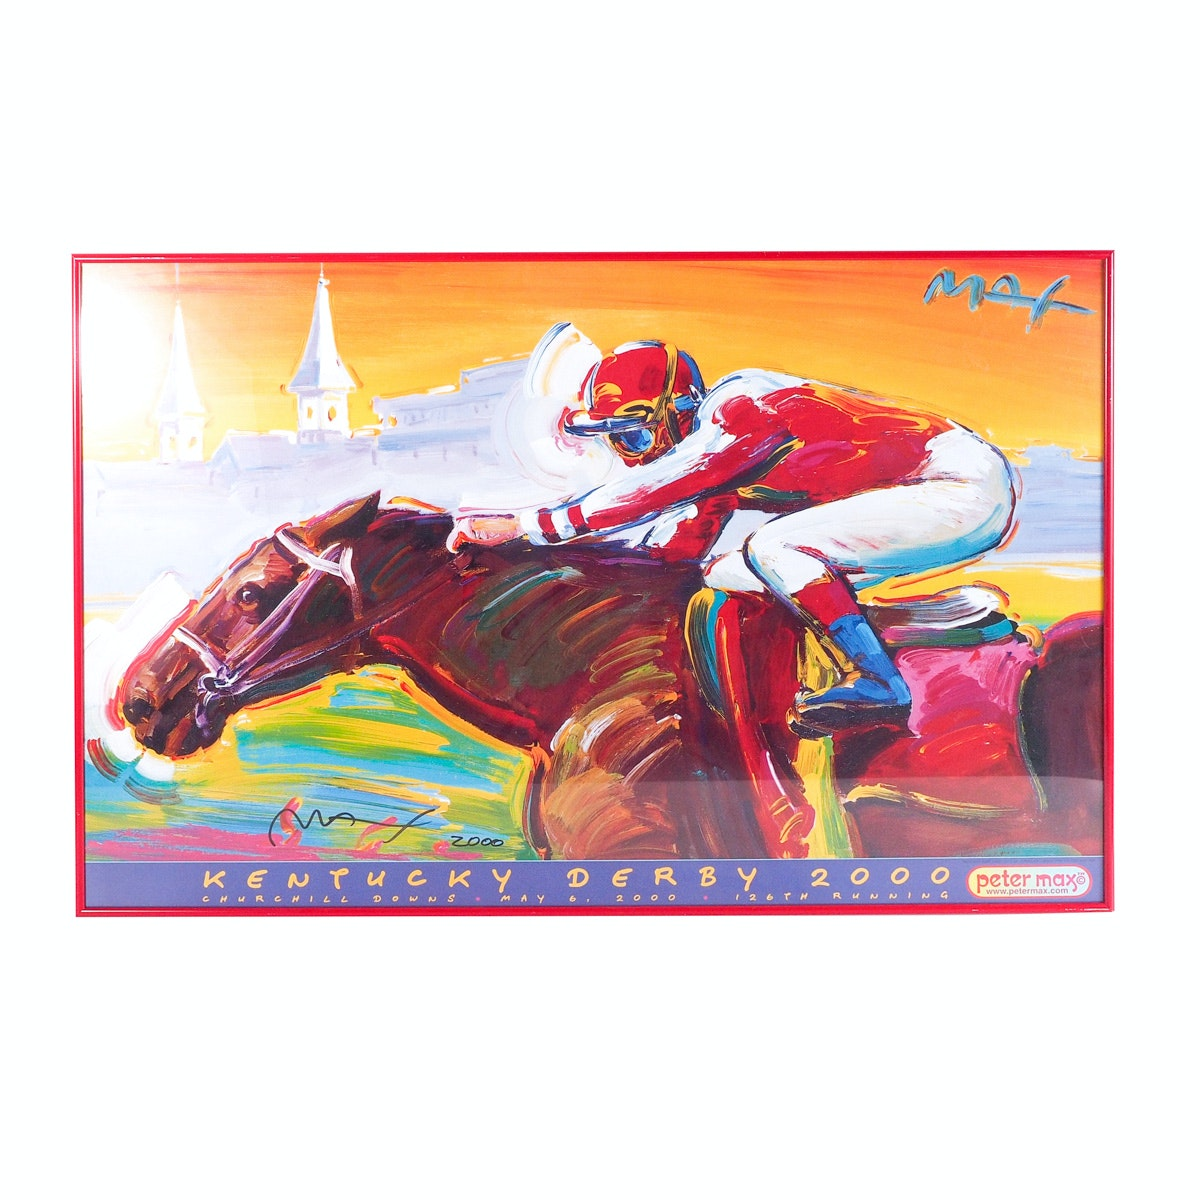 Peter Max Signed Poster for the 2000 Kentucky Derby